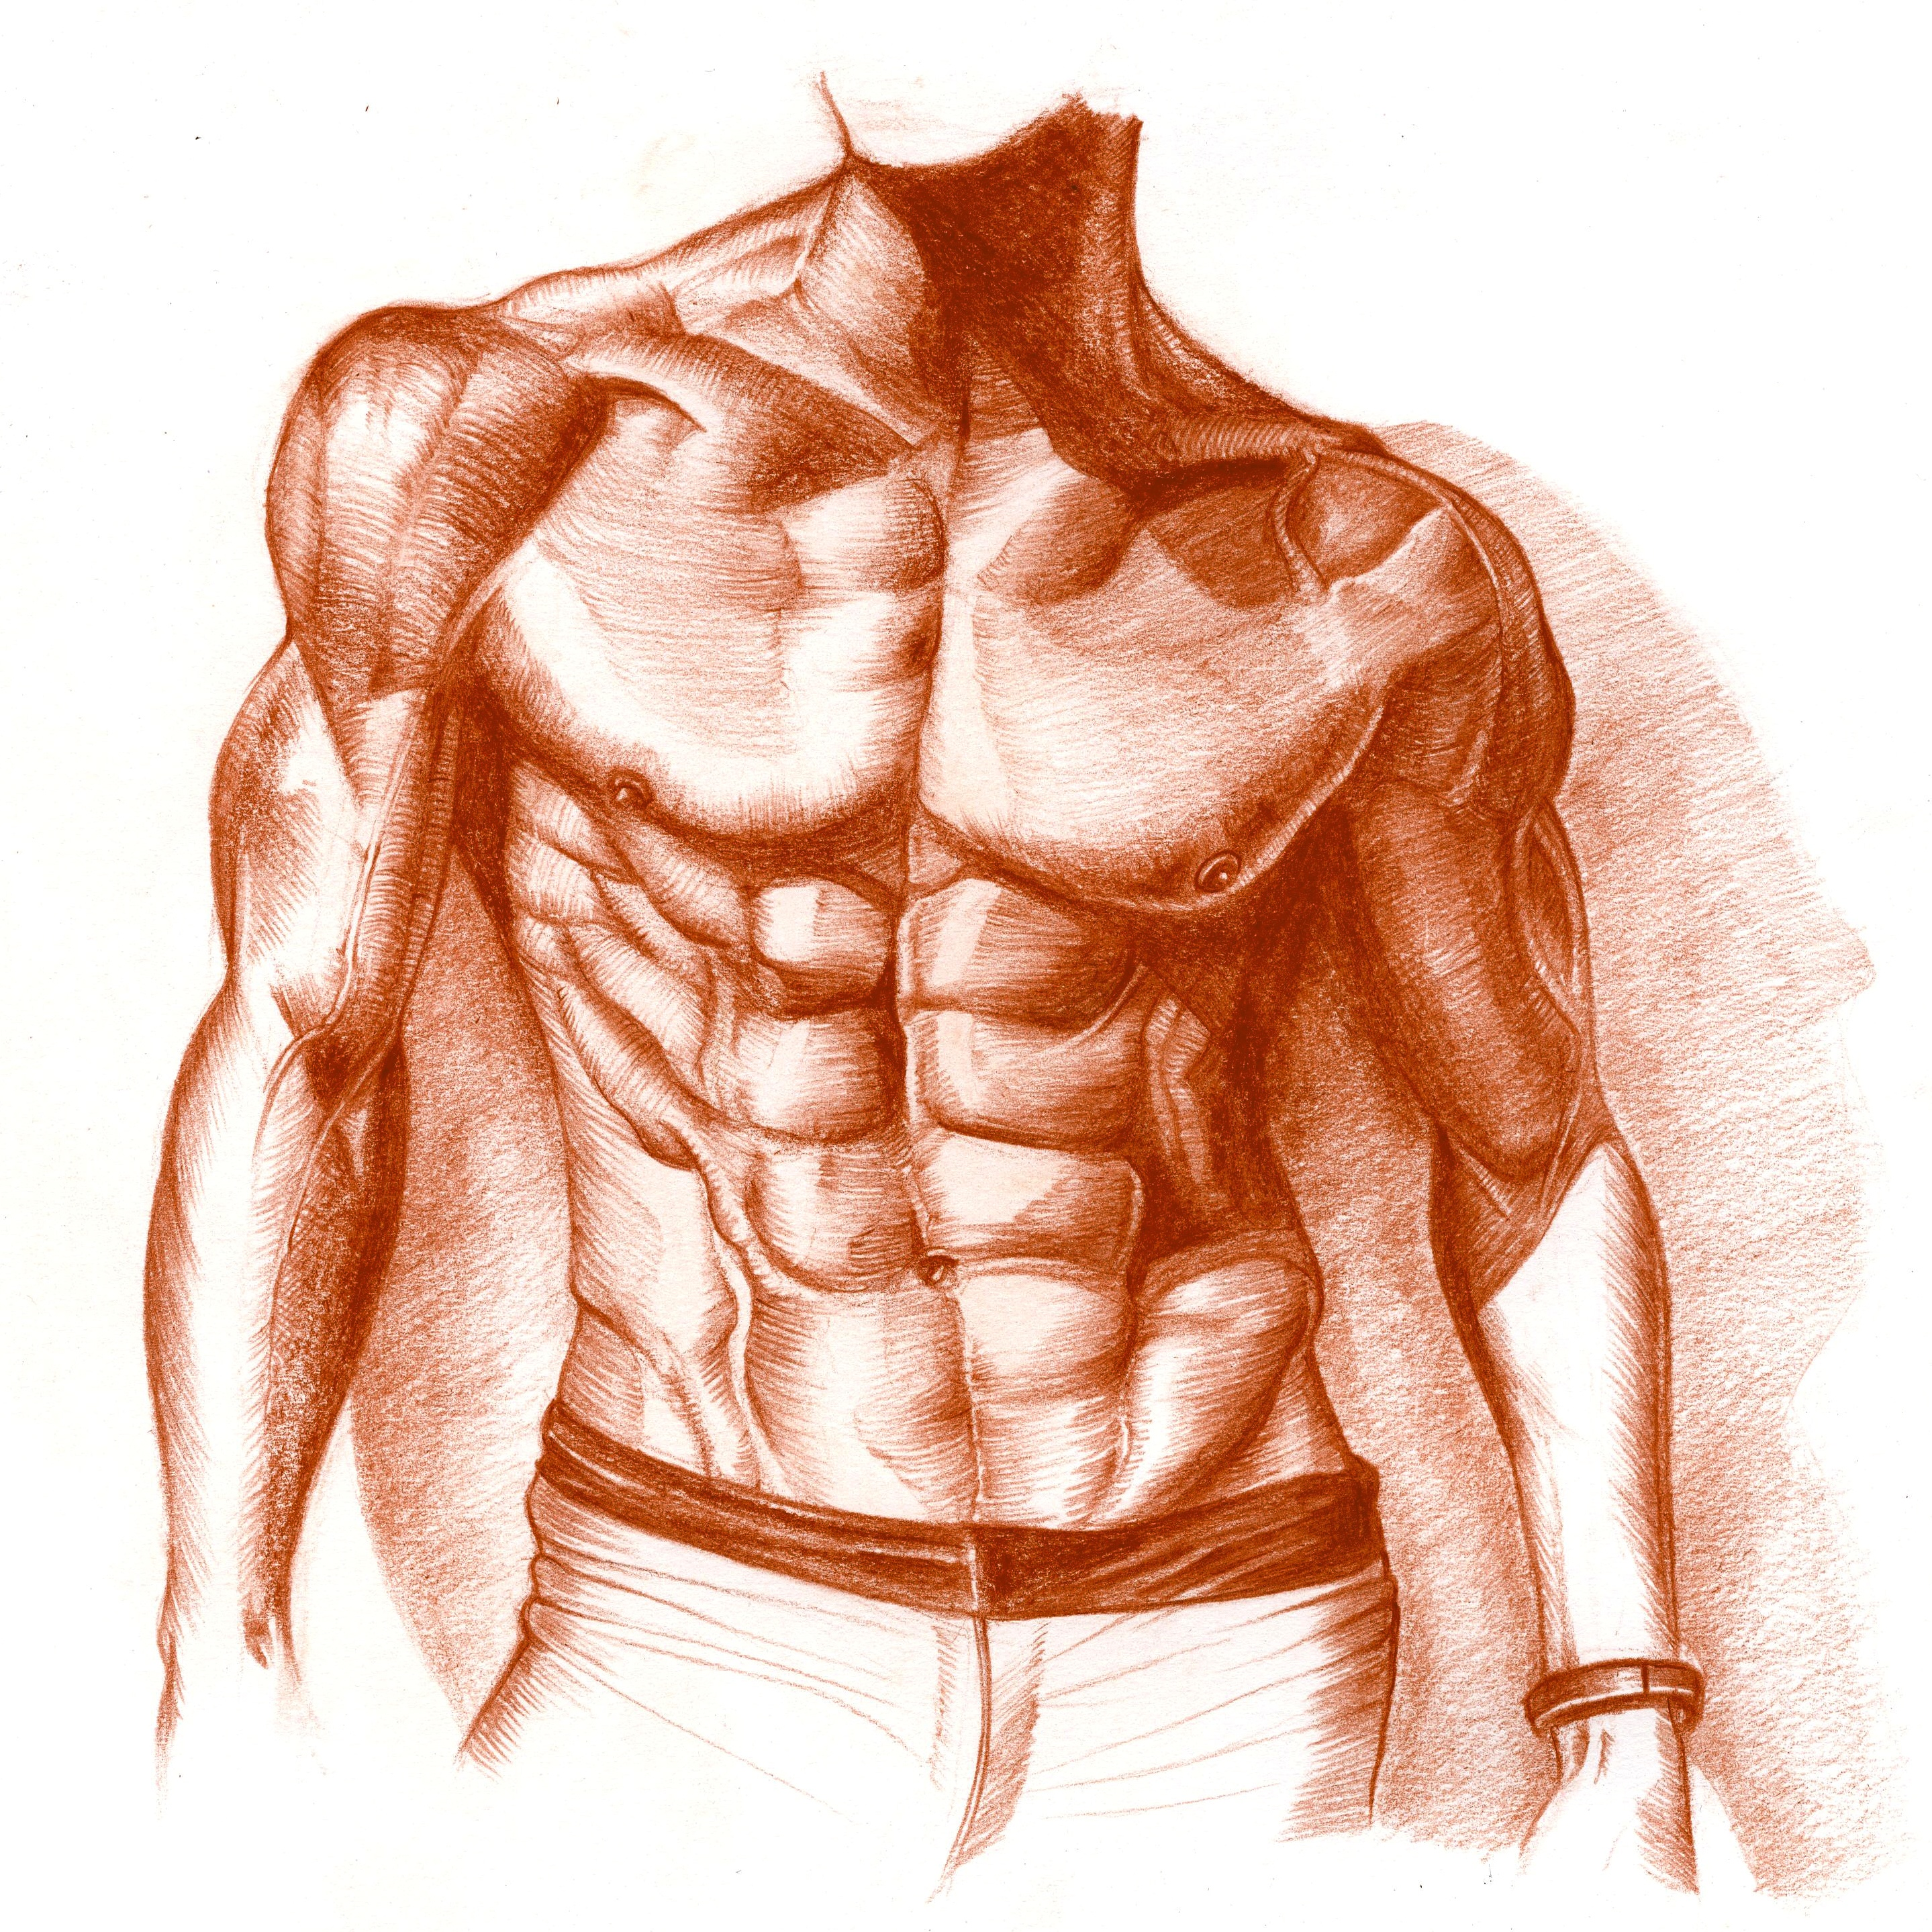 Human Chest Drawing at GetDrawings.com | Free for personal use Human ...